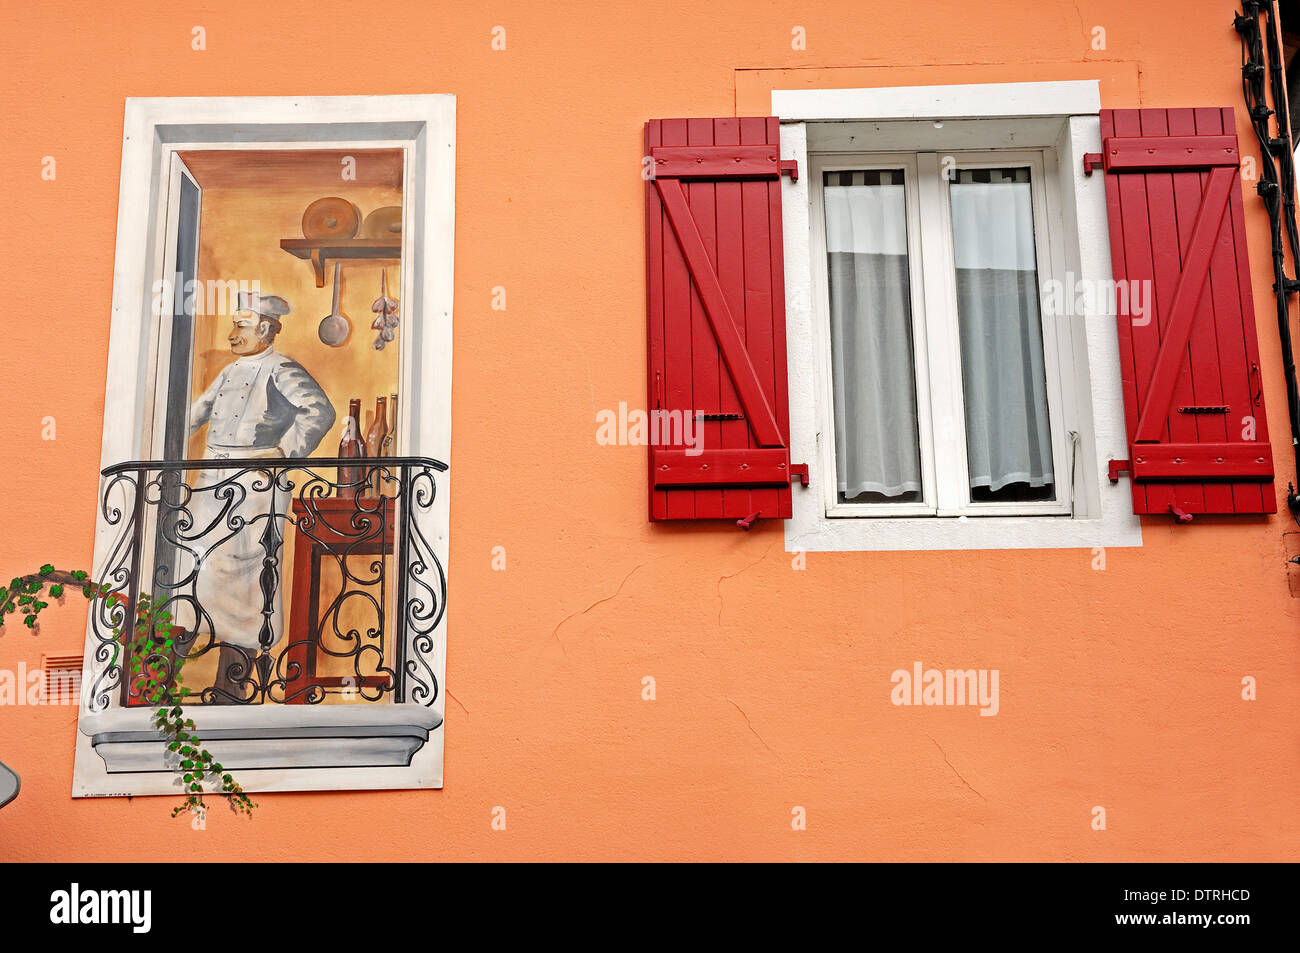 Wallpainting and window, Chalamont, Ain, Rhone-Alpes, France - Stock Image